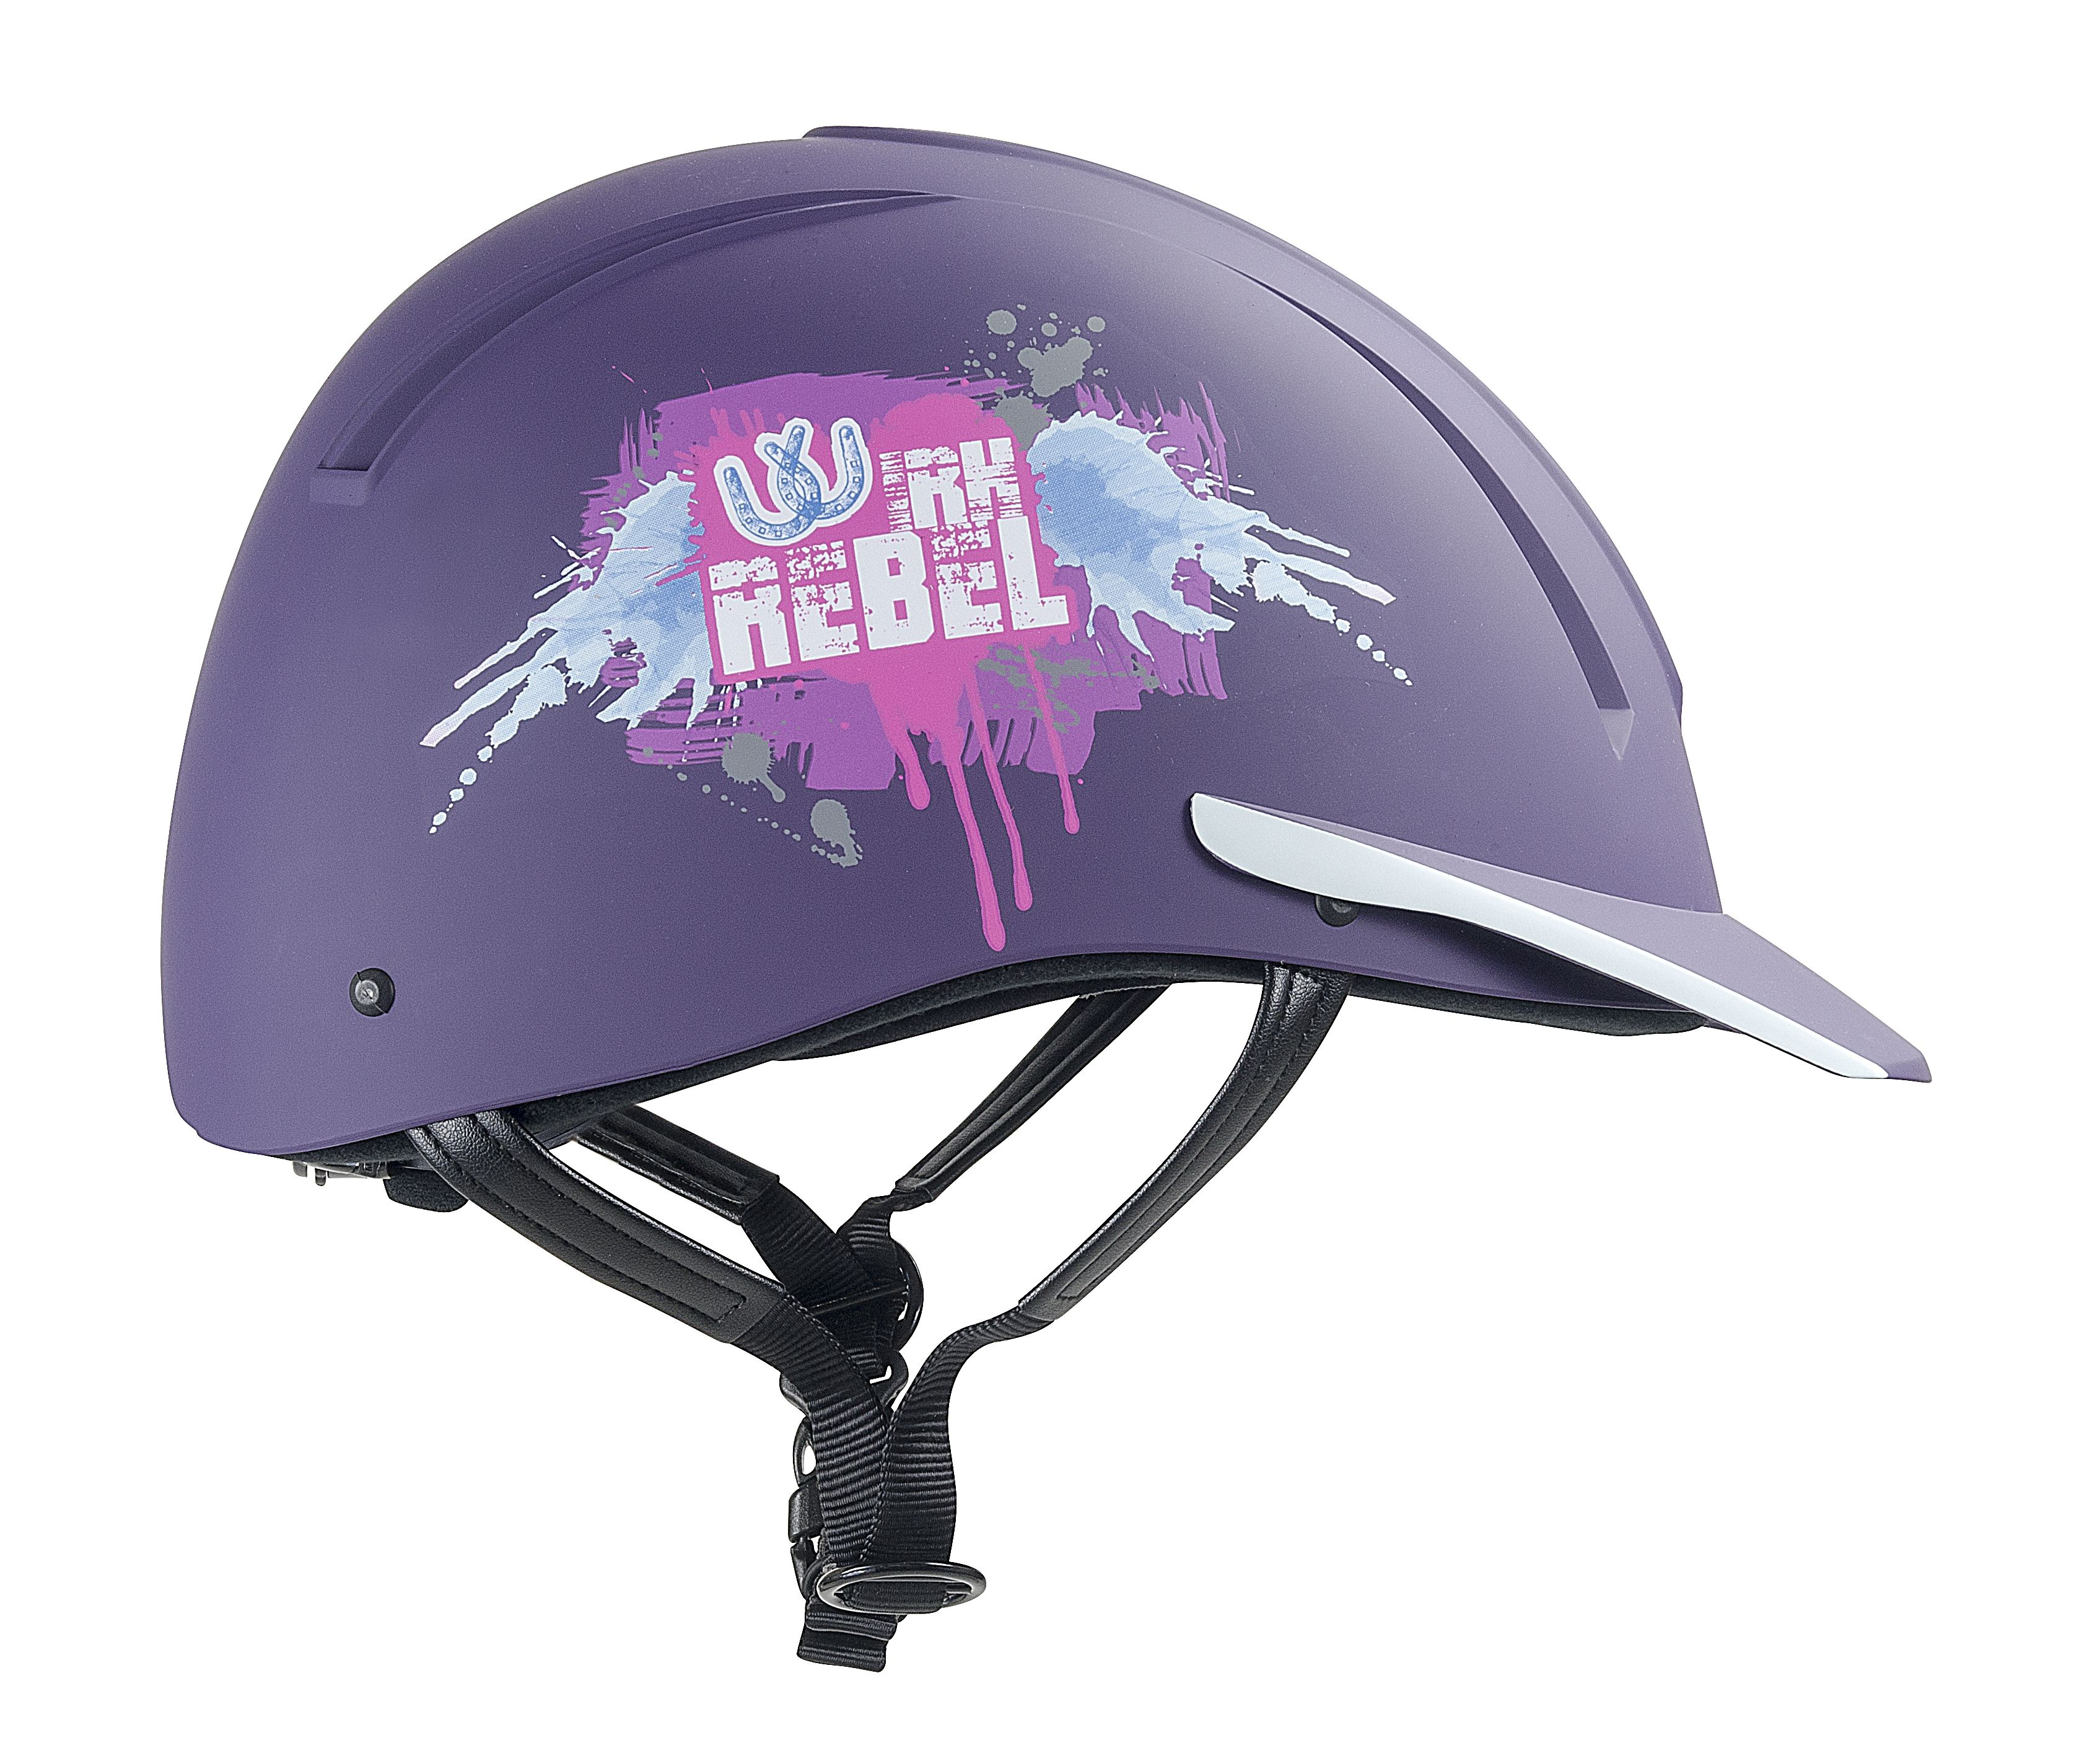 IRH Equi-Pro Rebel Matte Western Riding Helmet With Cool-On Removable Cool-On With Lining 53c27b